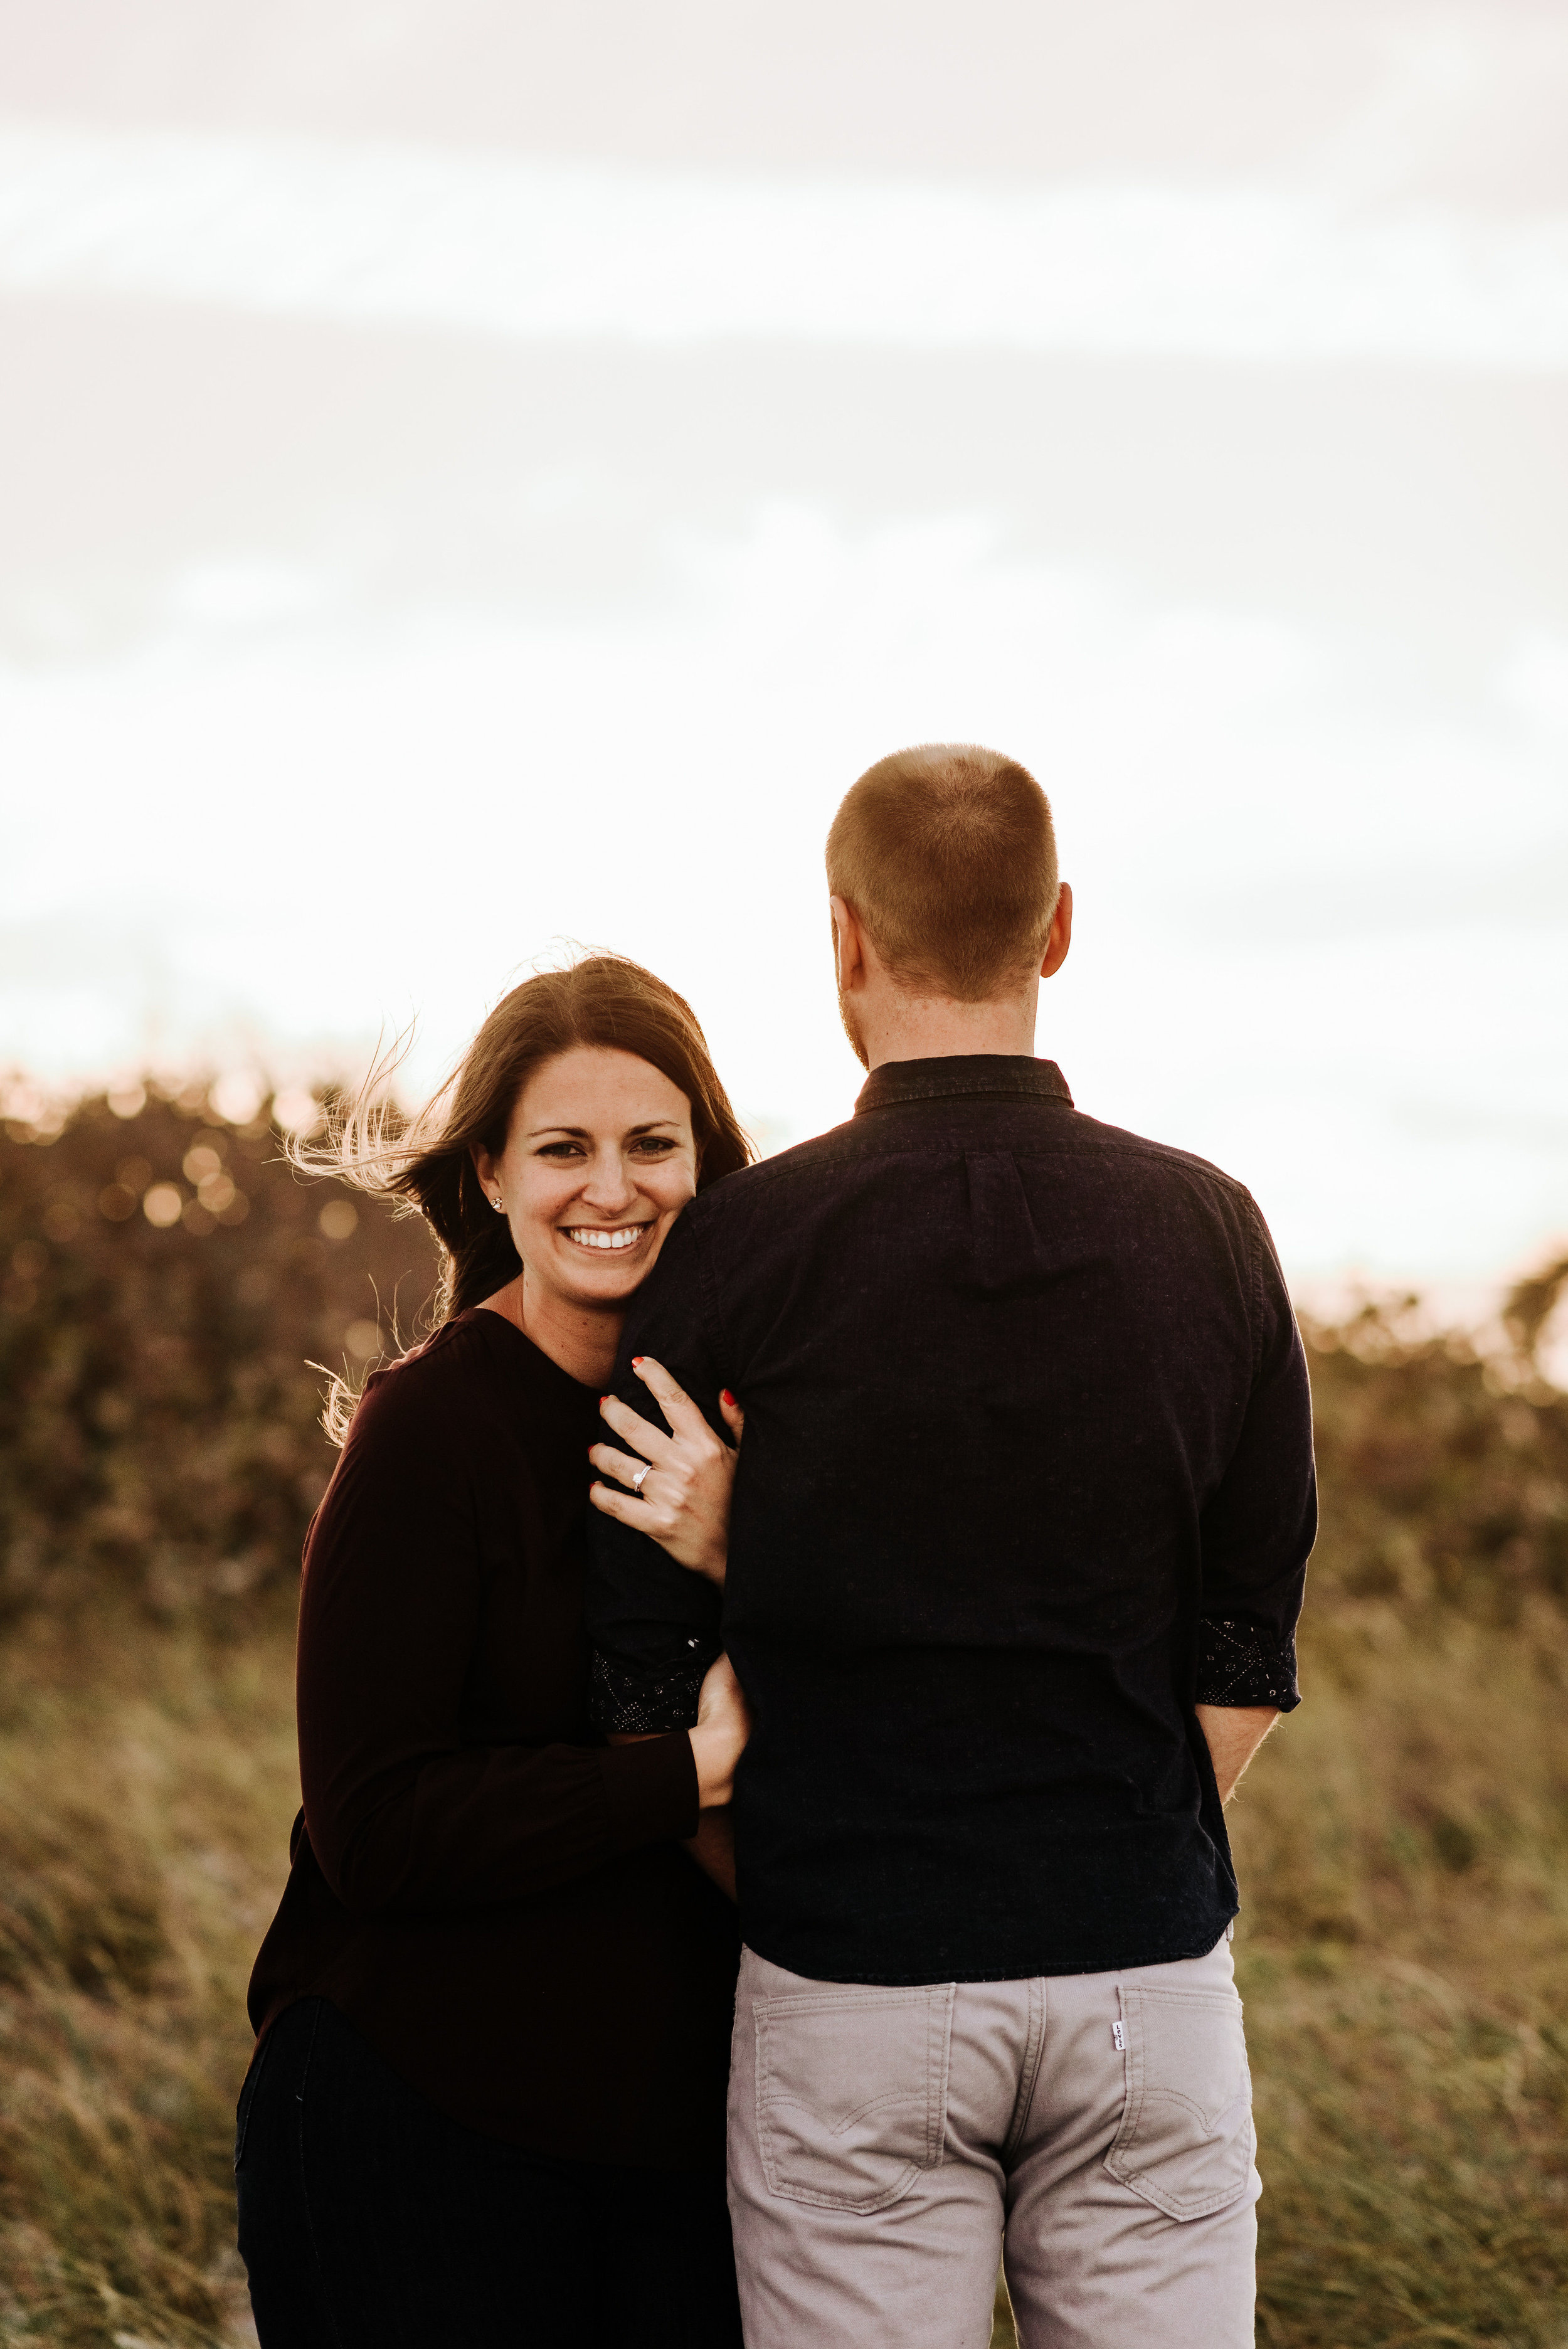 Courtney_Luke_Wedding_Engagement_Session_Cocoa_Beach_Florida_Photography_by_V_4672.jpg